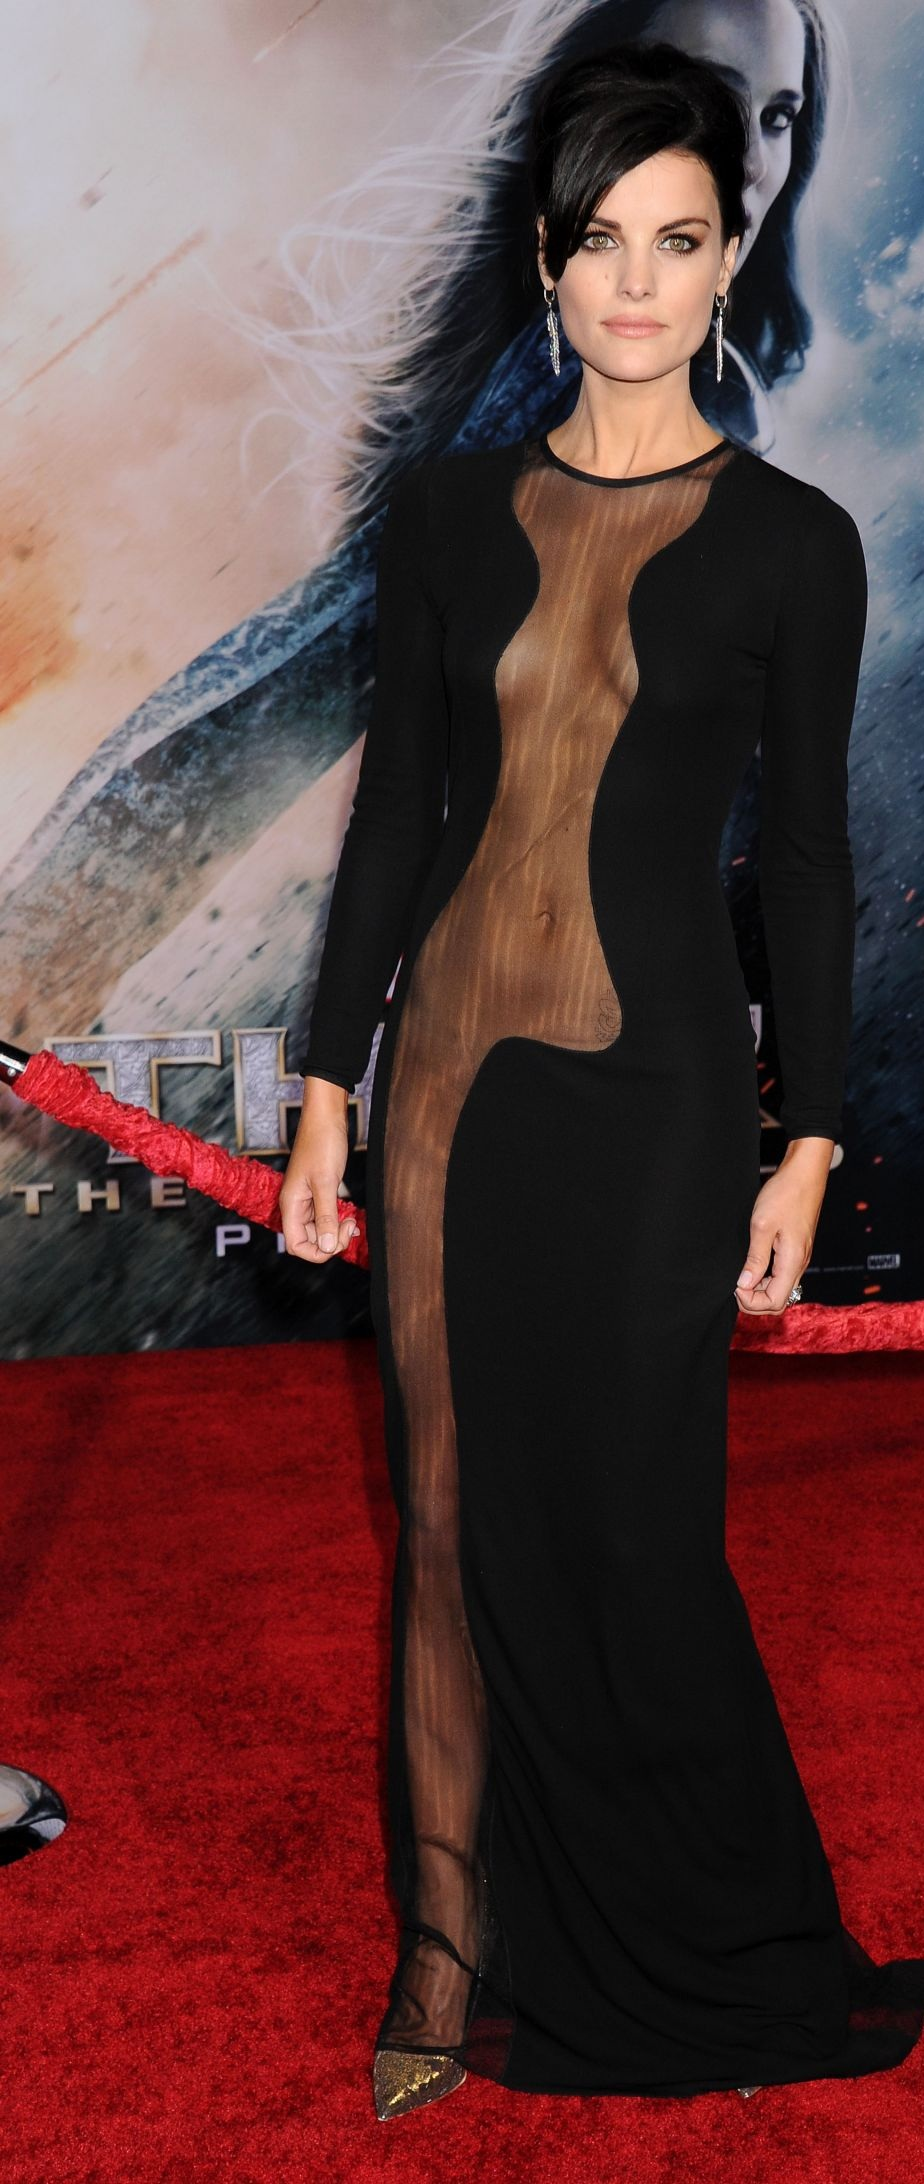 jaimie-alexander-at-thor-the-dark-world-premiere-in-hollywood_9.jpg - 357.51 KB